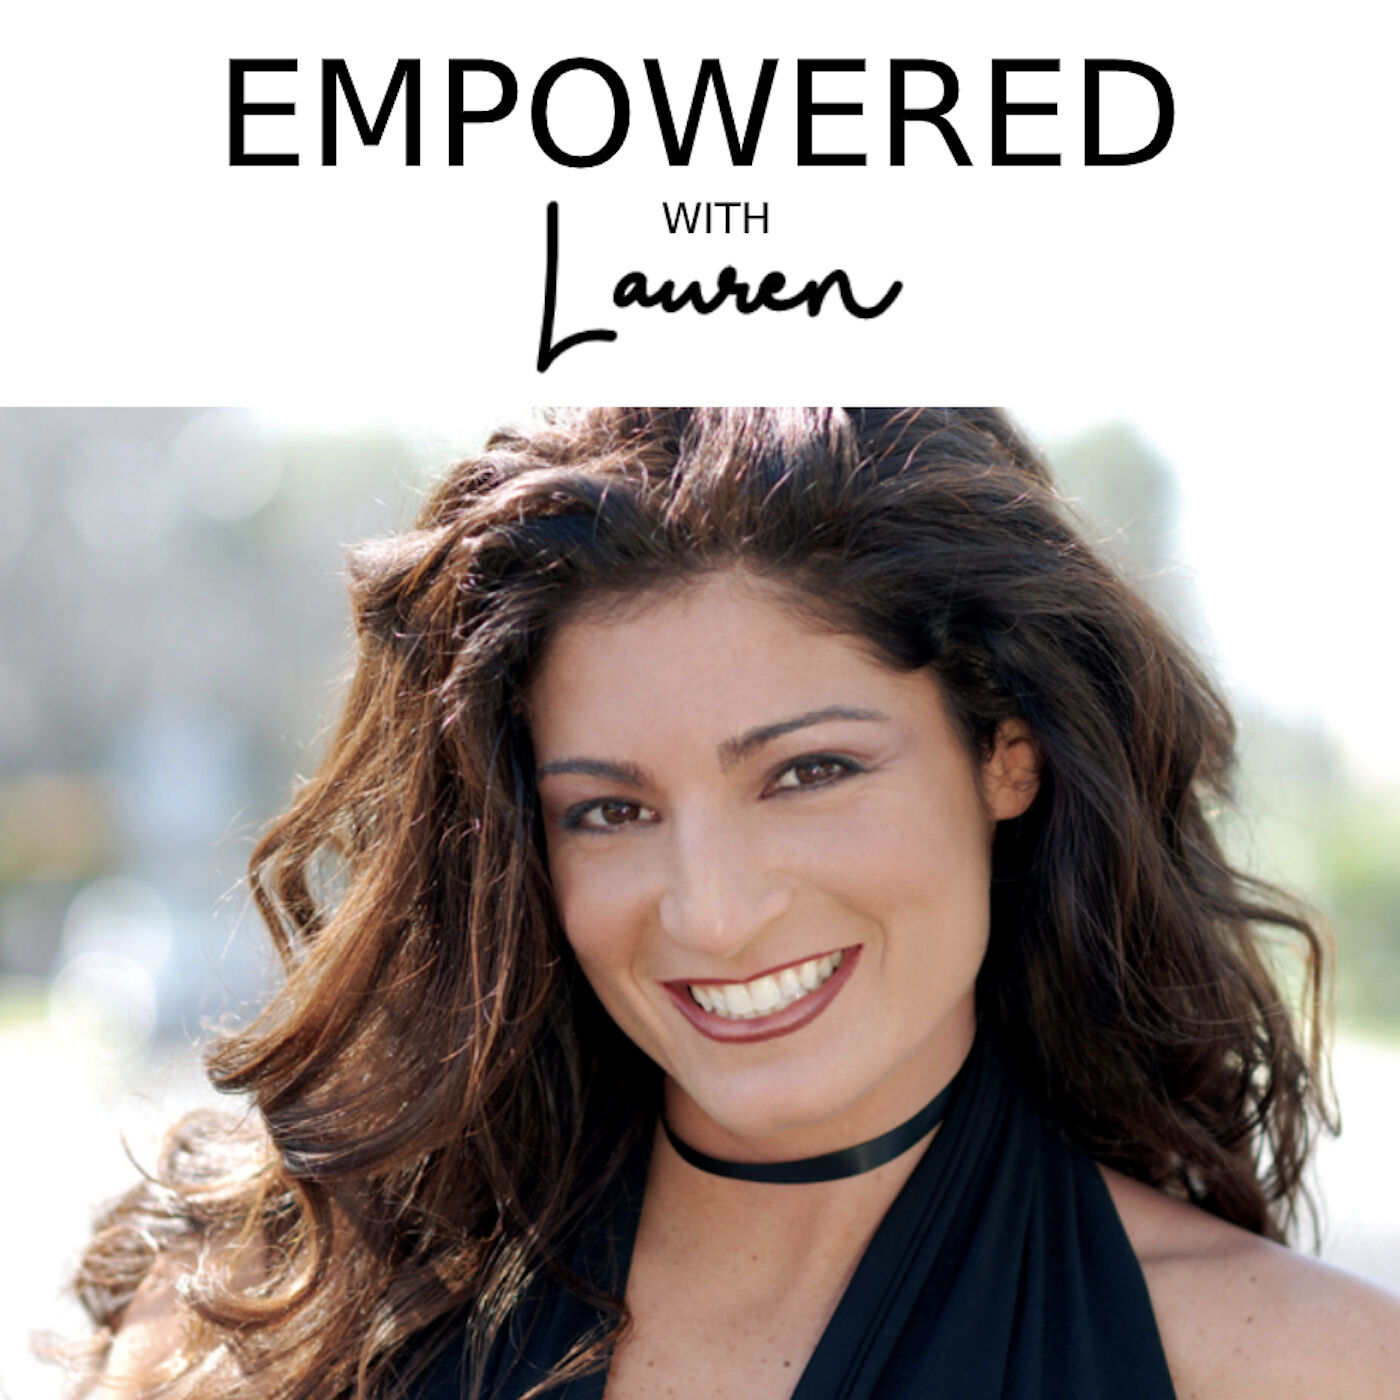 Empowered with Lauren Show 1 Intro